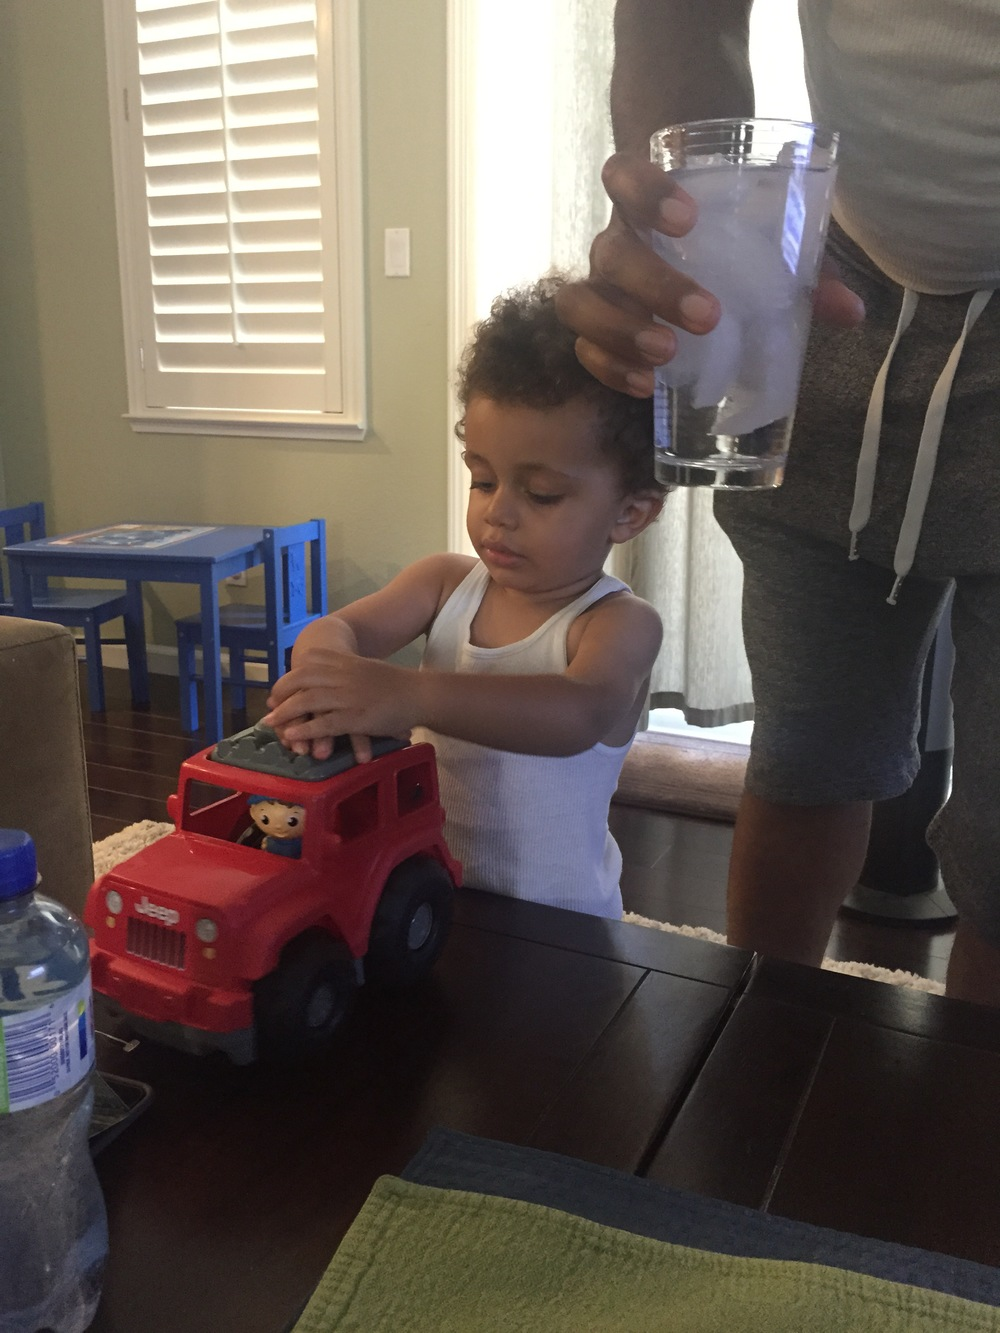 Jax and truck Uncle Inno brought